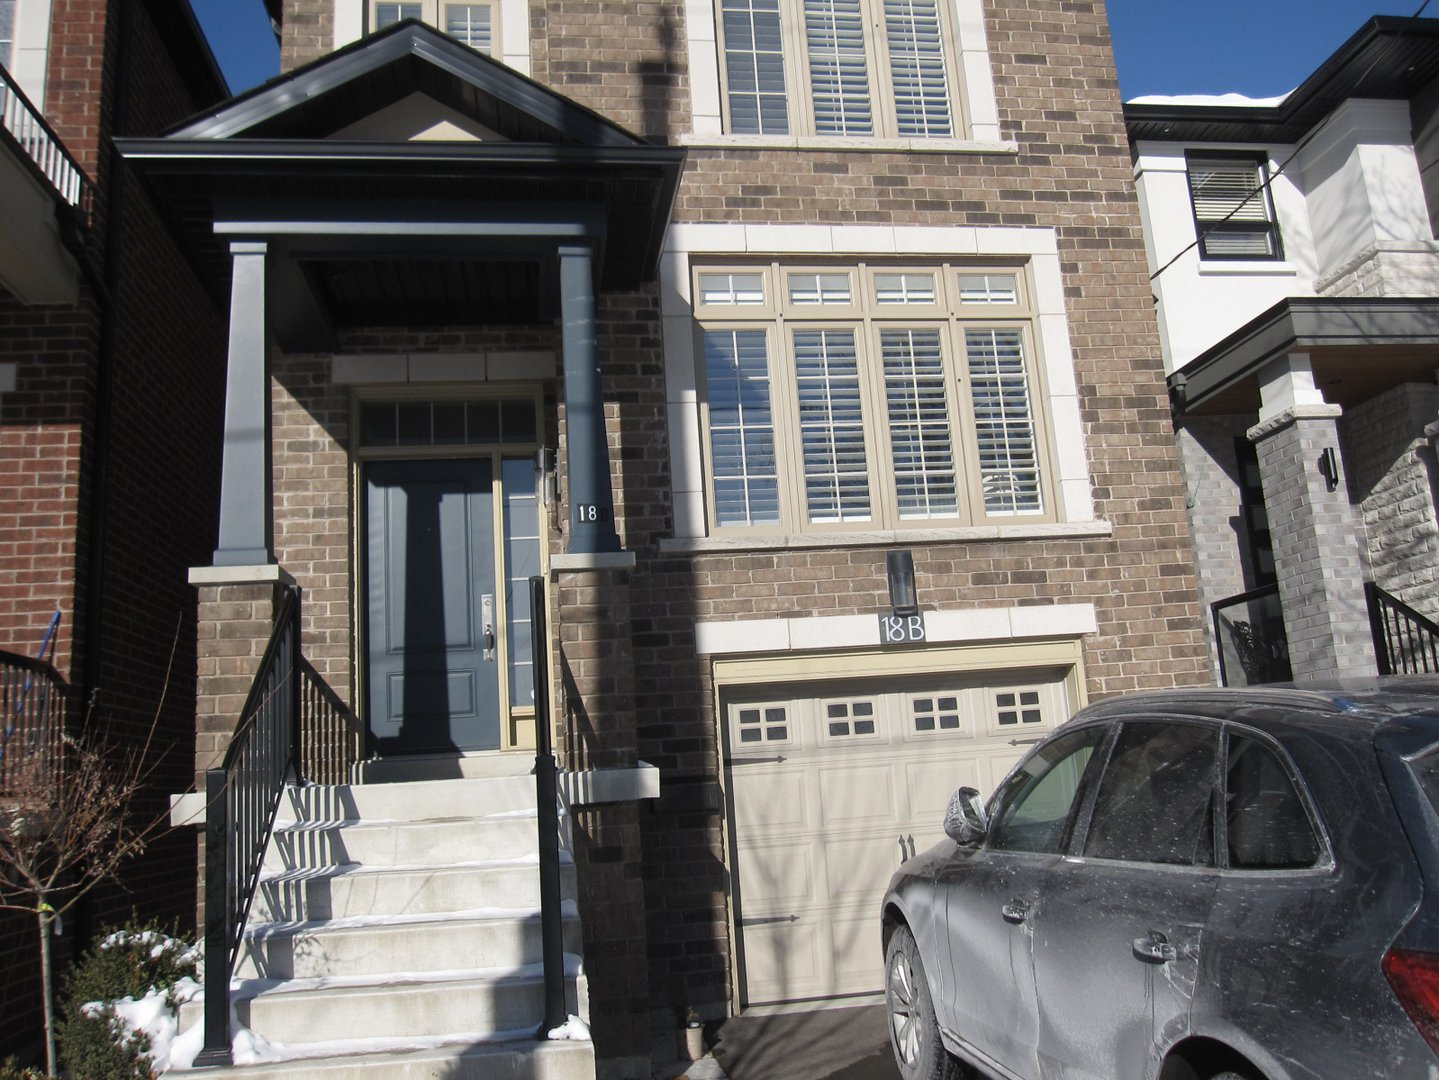 House for rent at 18 Algoma St, Etobicoke, ON. This is the outdoor building.